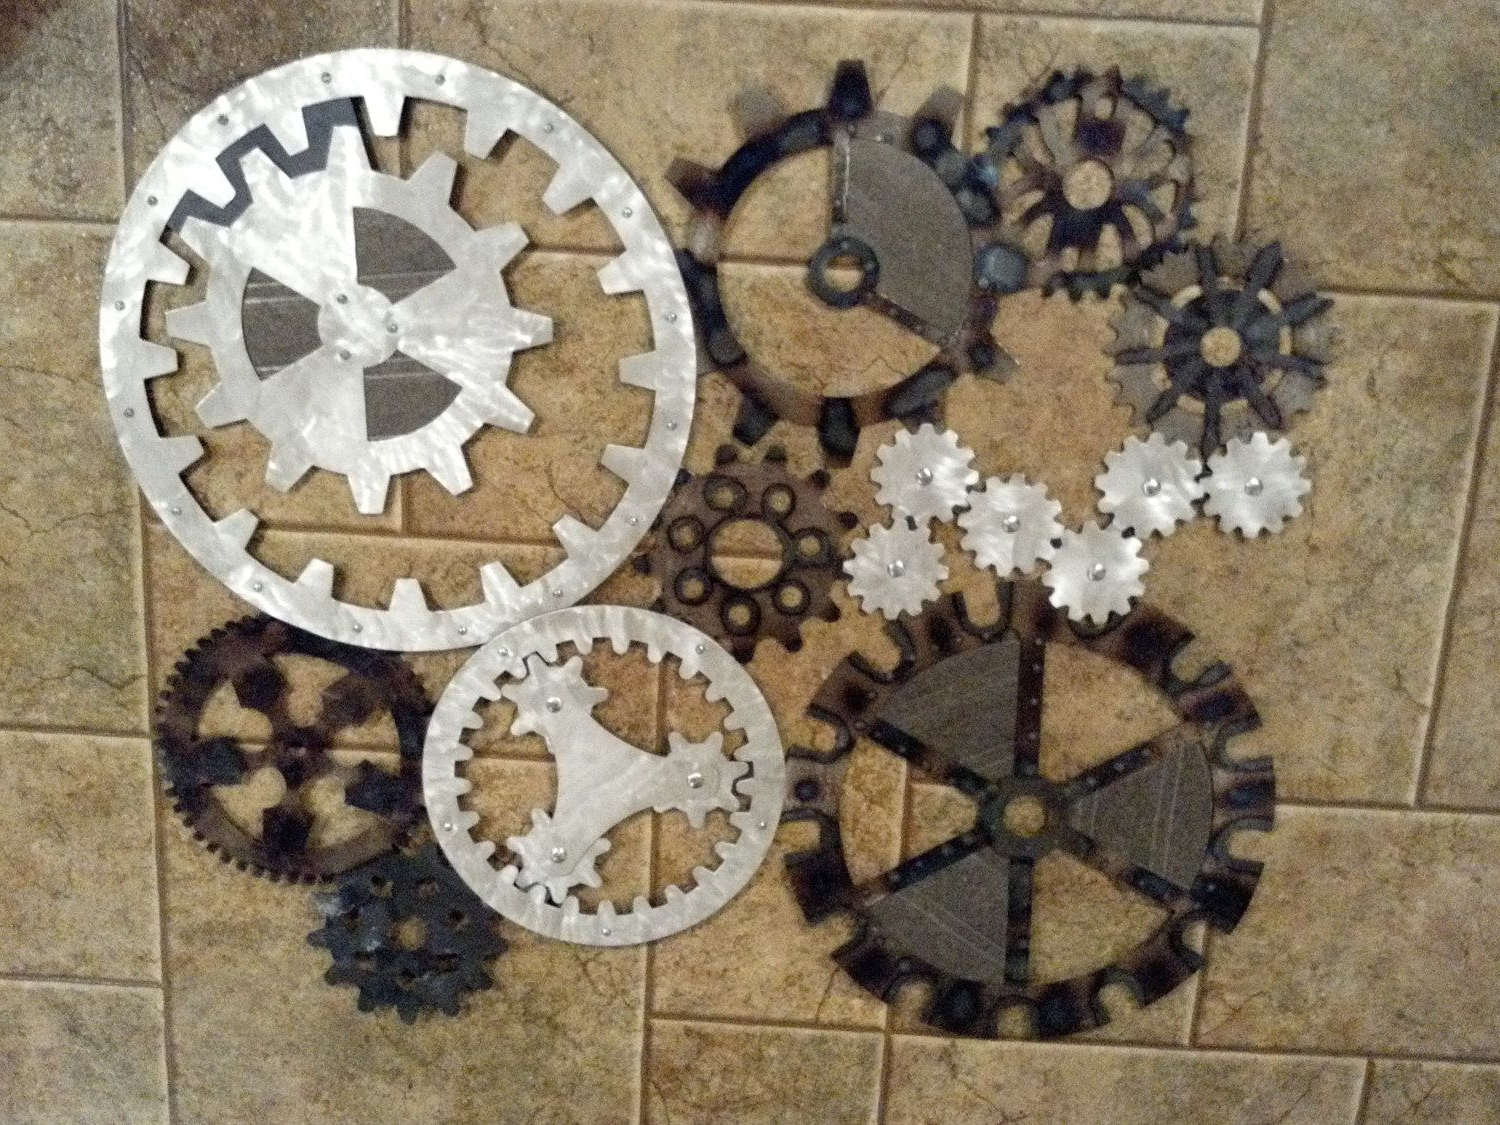 Gears Art, Industrial, Steampunk Wall Decor Made To Order Throughout Famous Steampunk Wall Art (View 5 of 20)